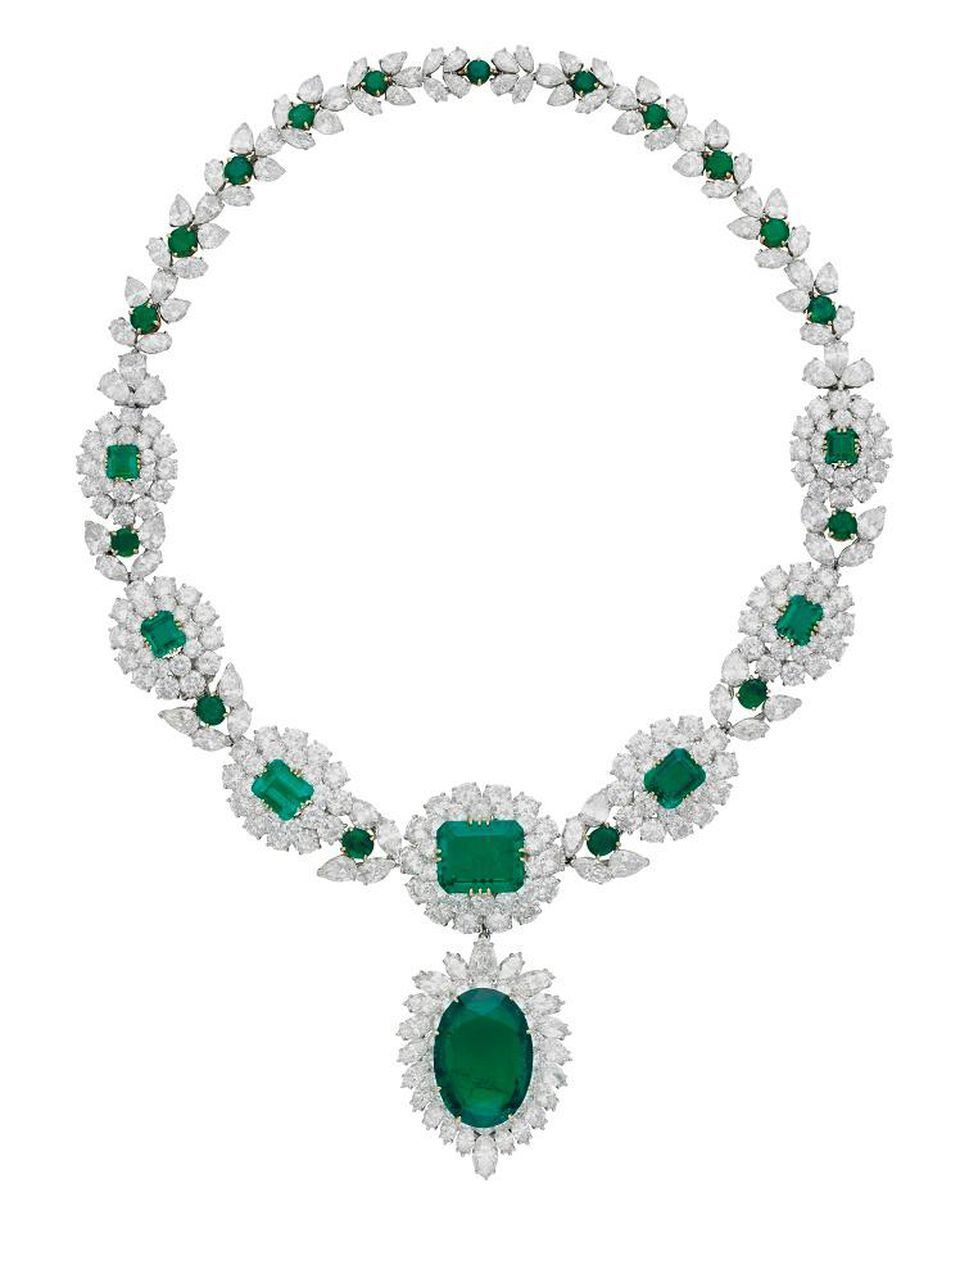 A large transformable emerald and diamond necklace.